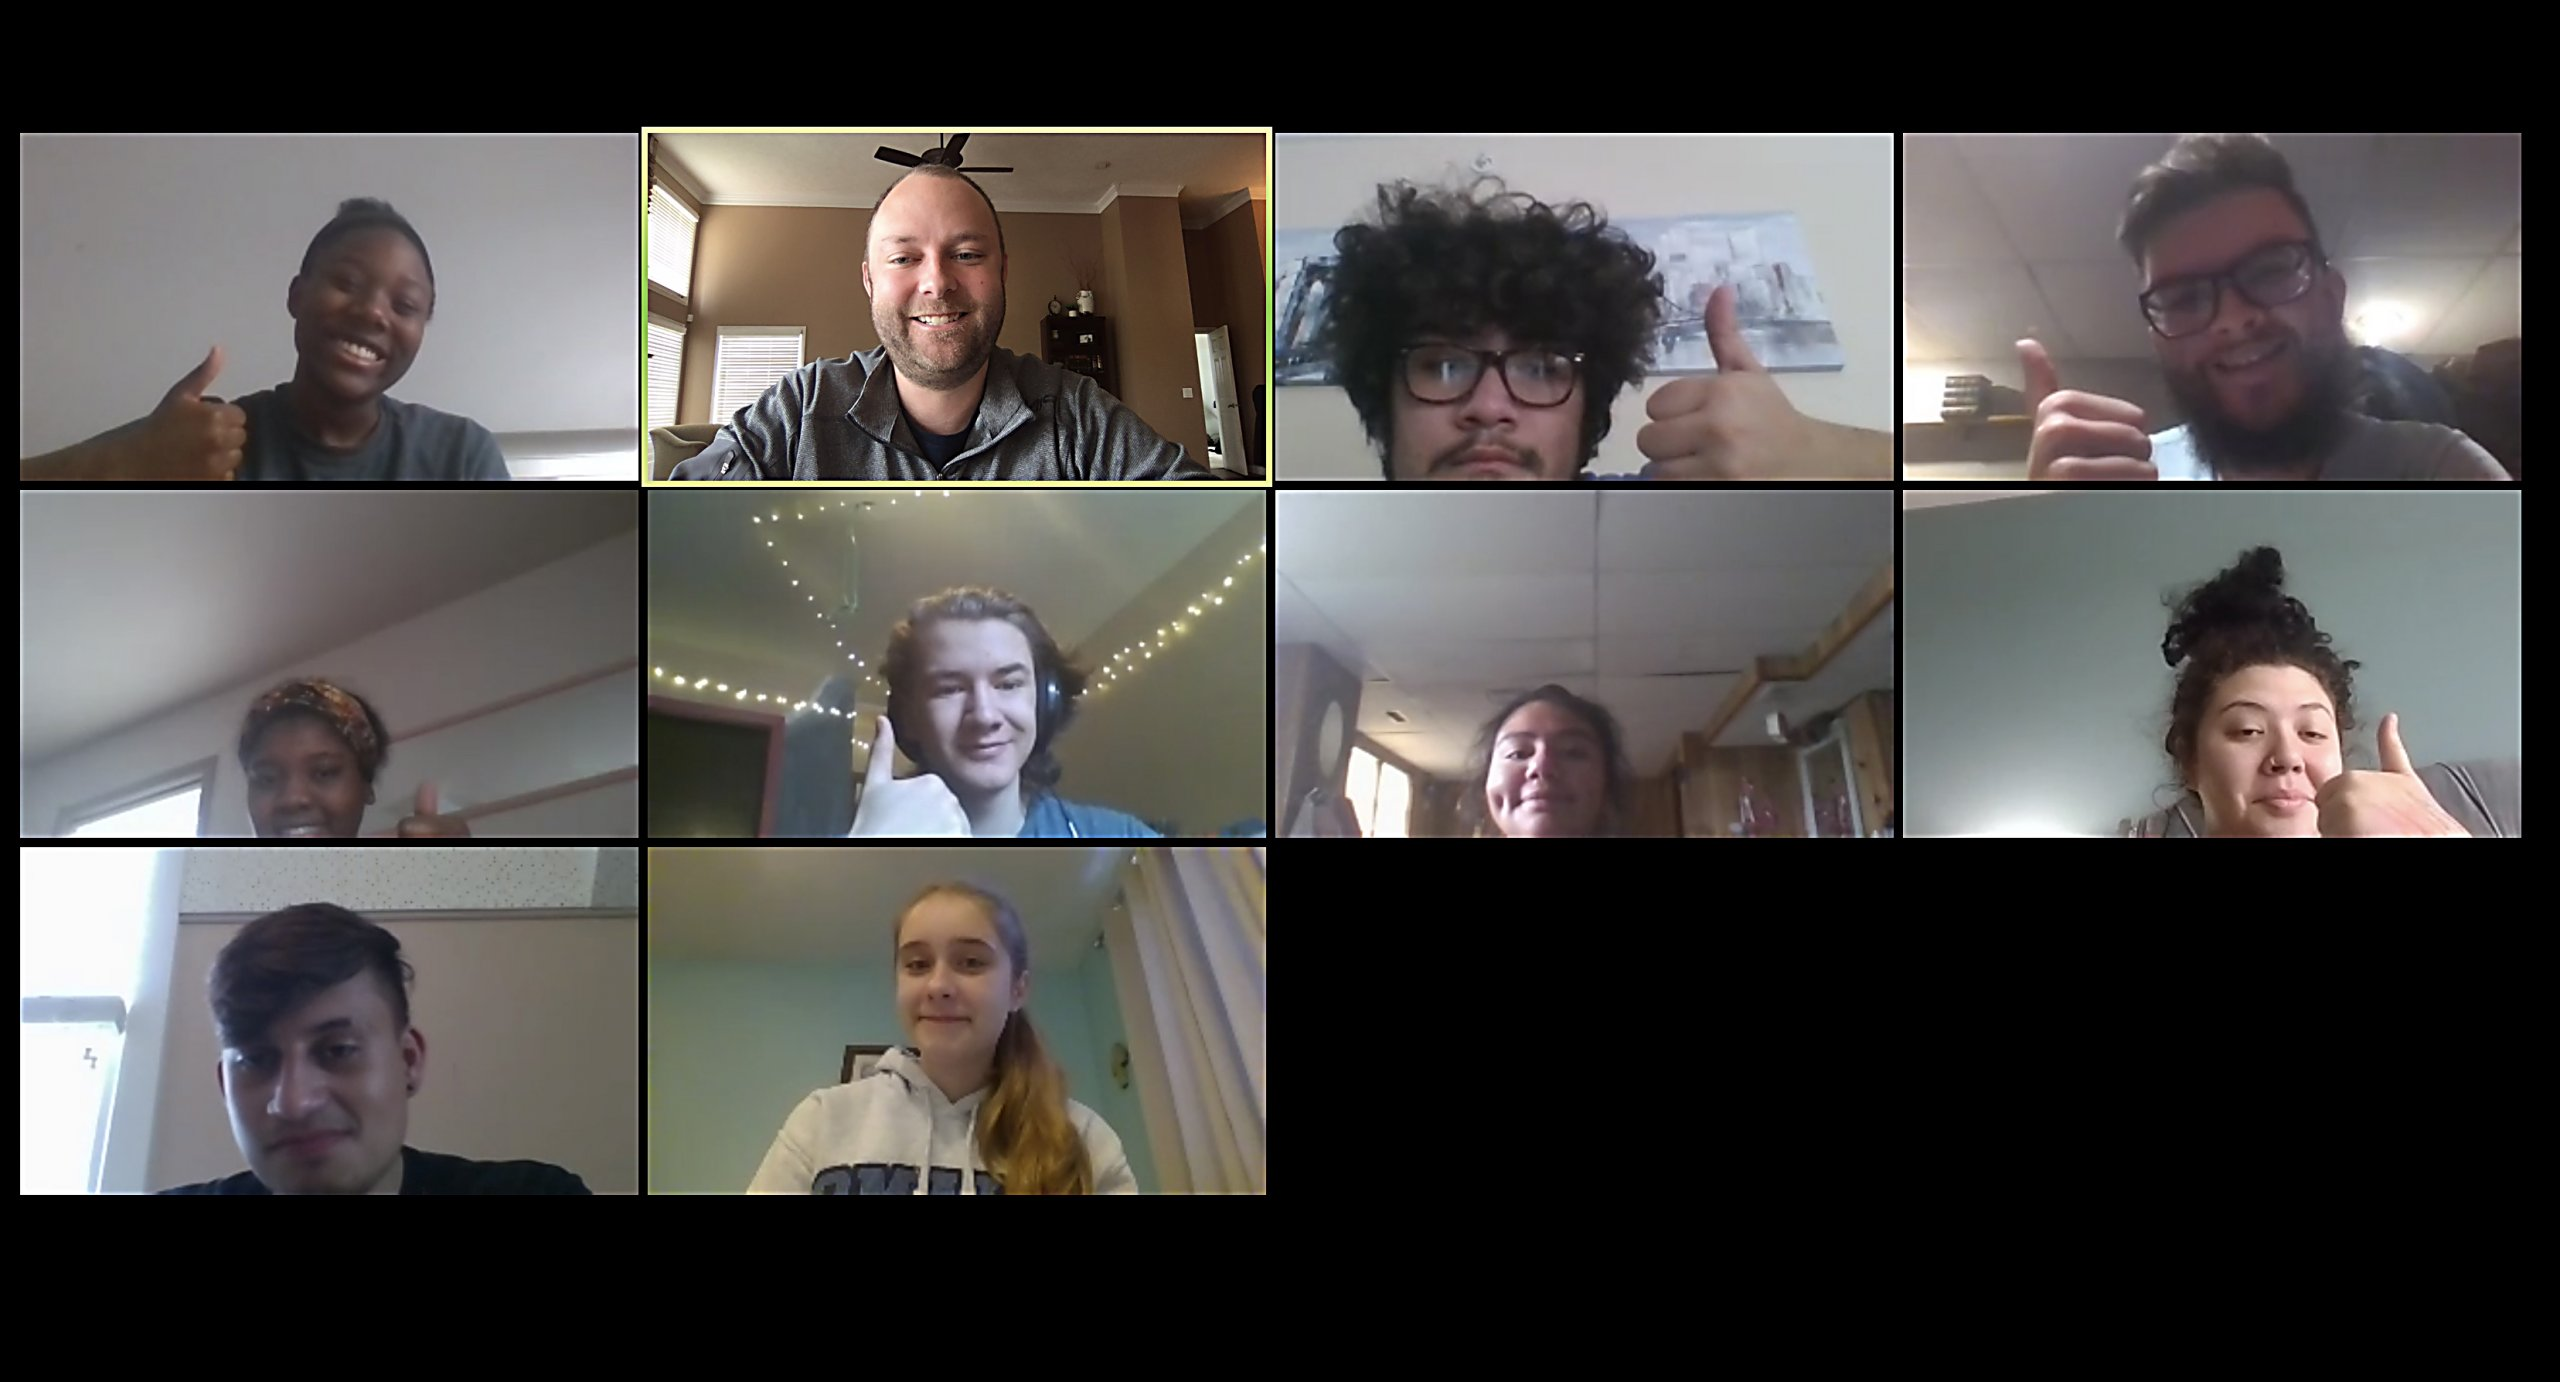 A screenshot of a Zoom call where students are distance learning during an English class. The students and the teacher all smile at the camera and give a thumbs up.